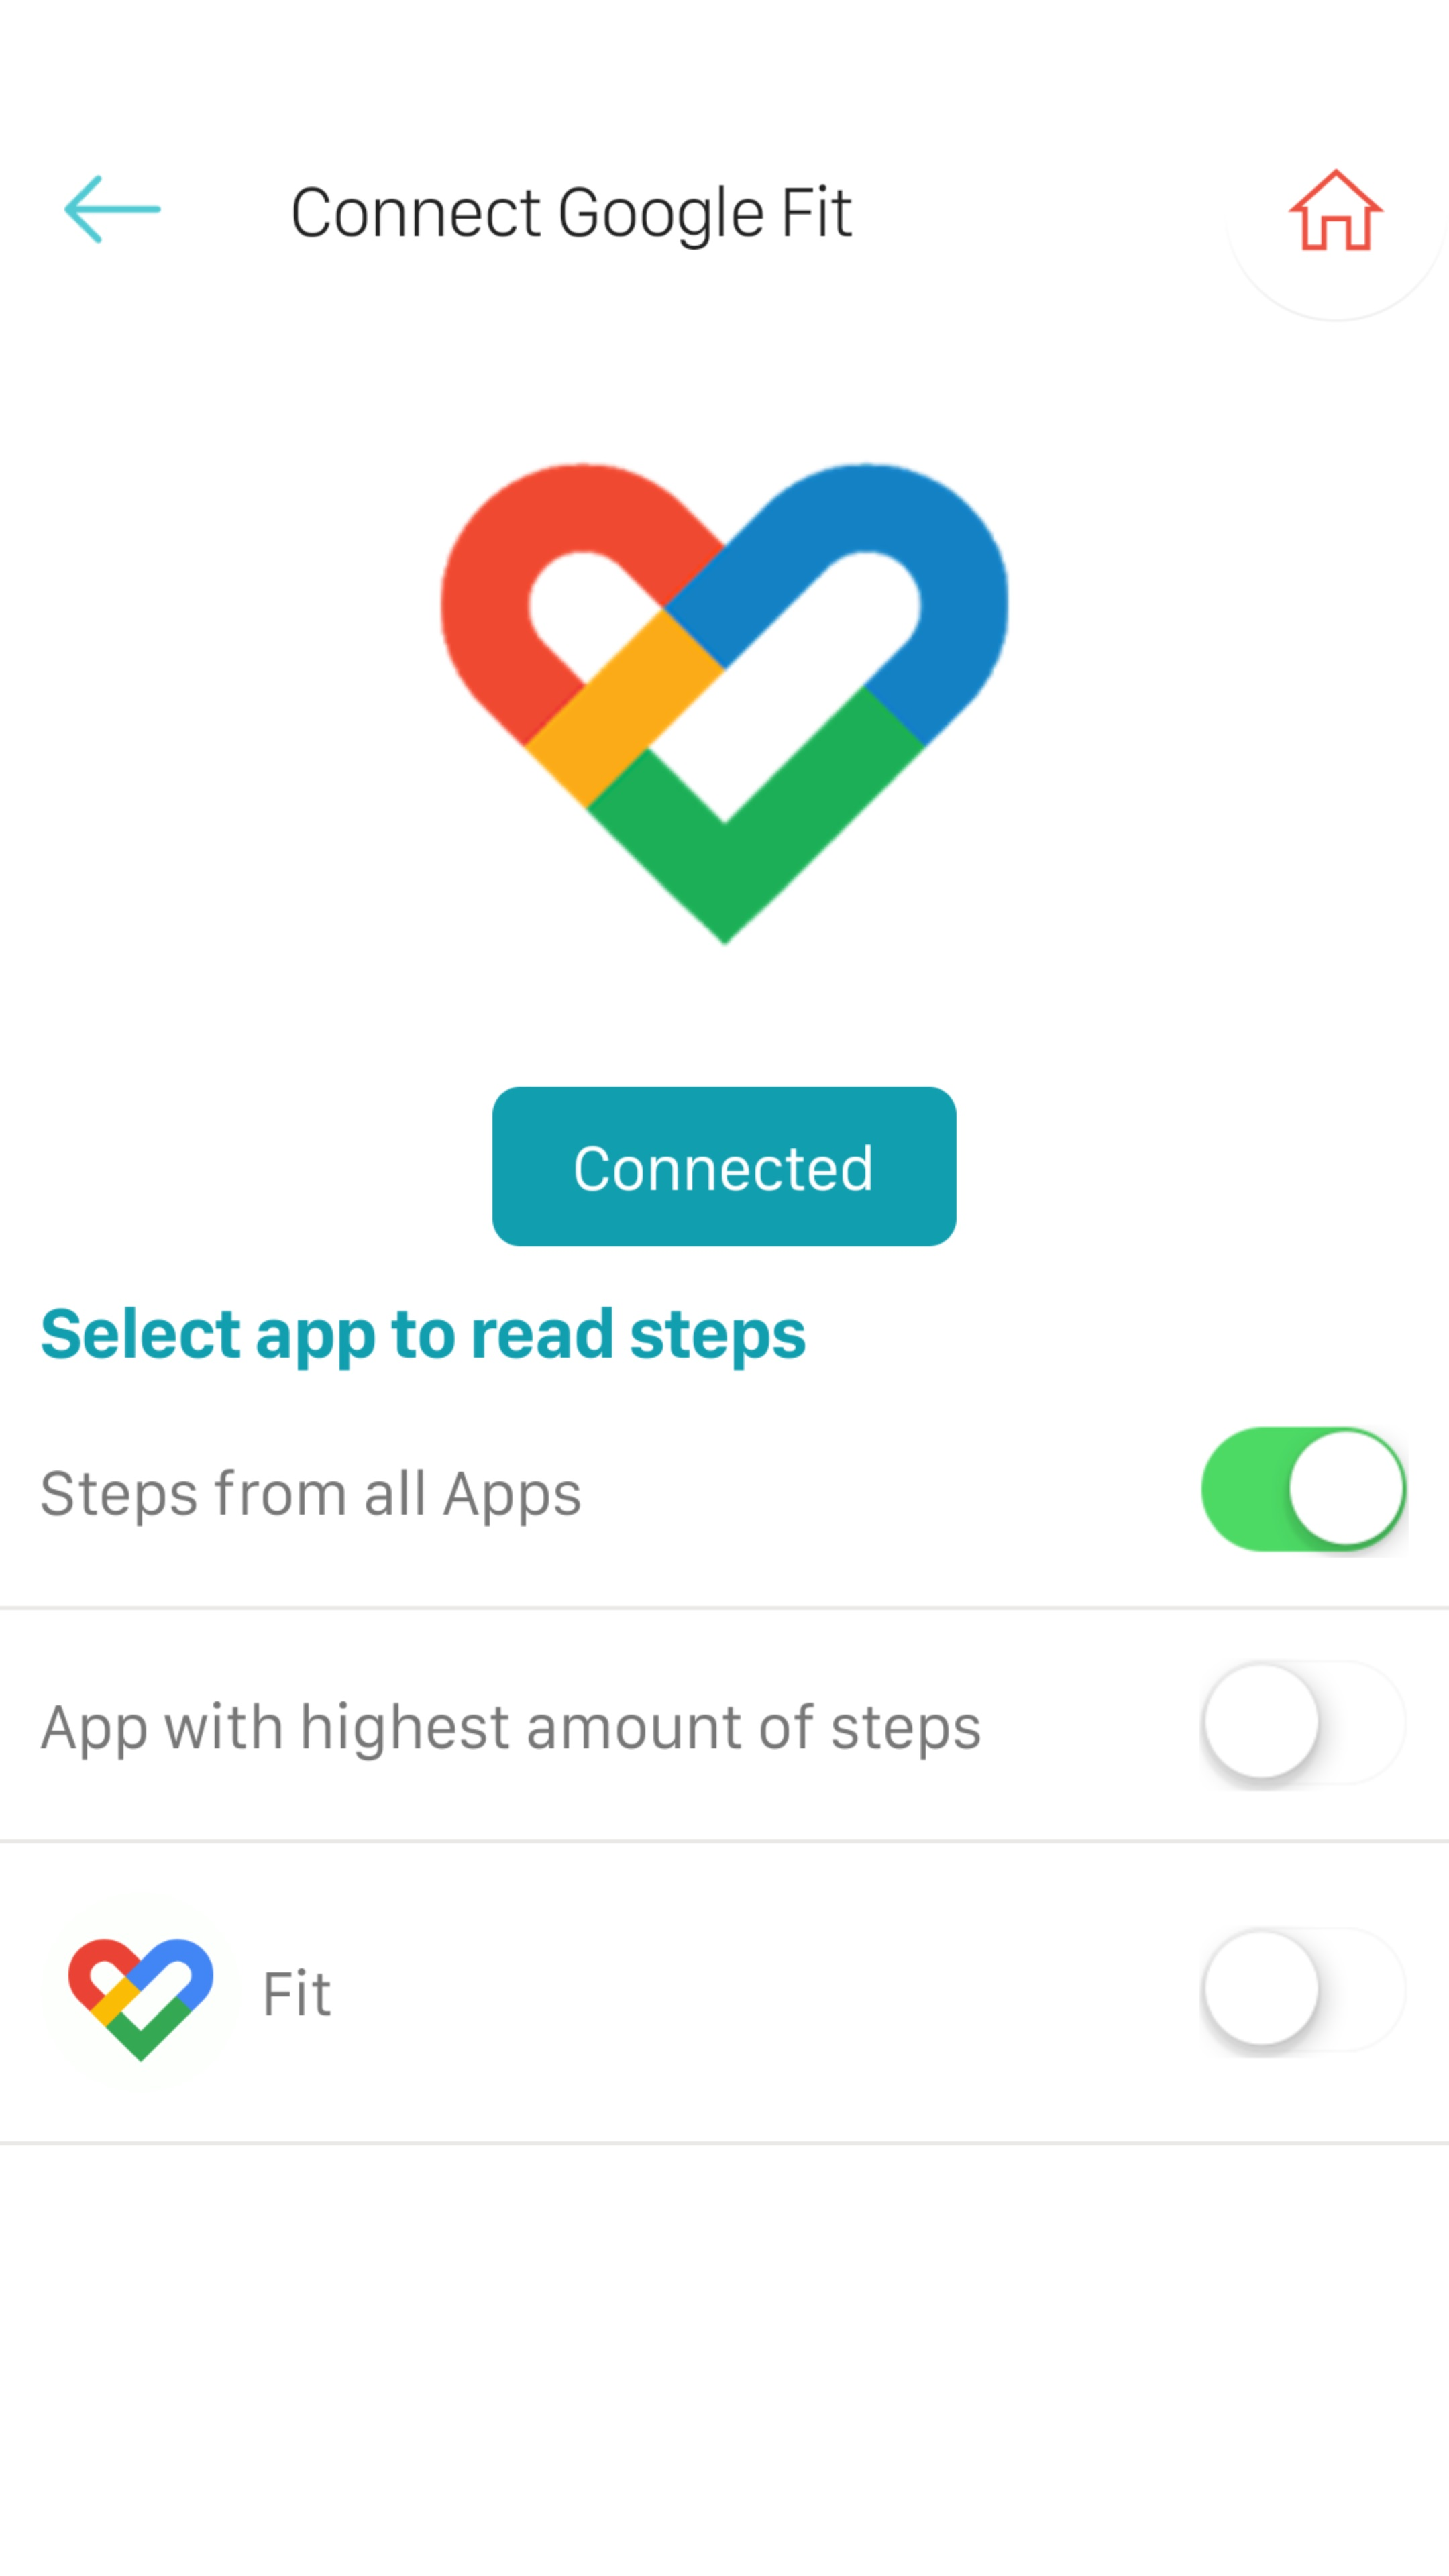 Google_Fit_Permissions_Enabled_for_all_steps.jpg